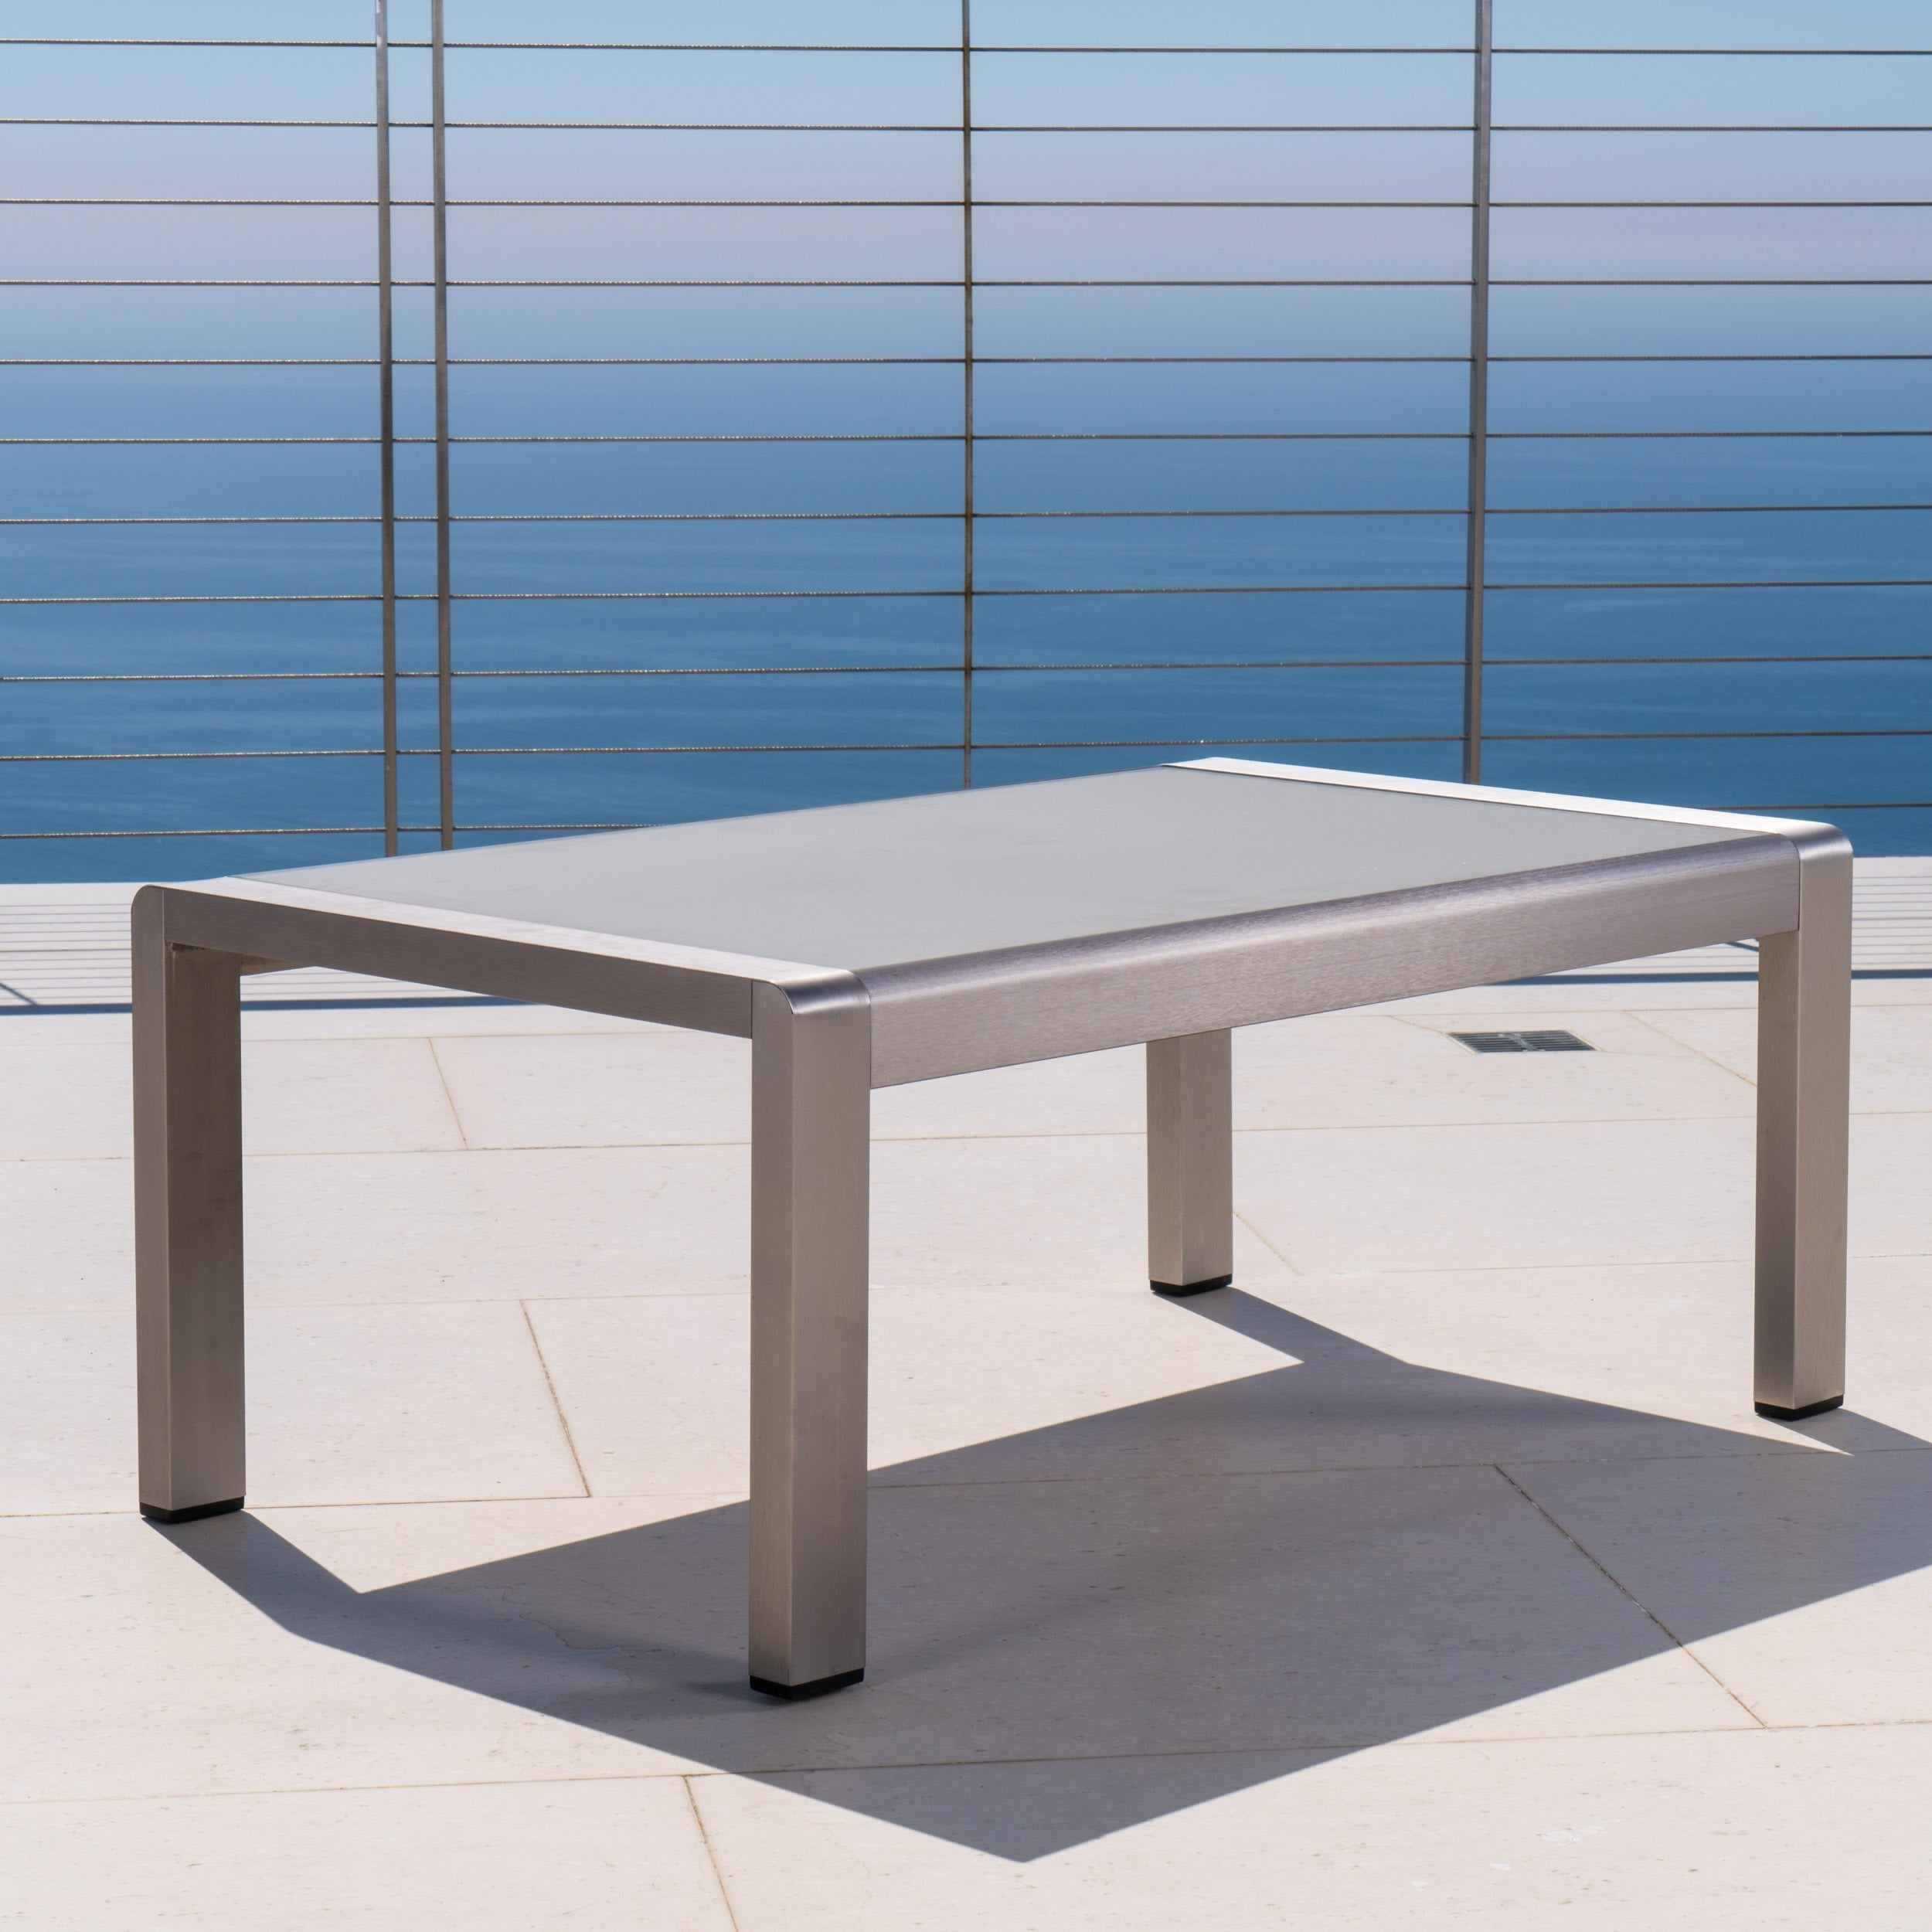 Cape C Outdoor Aluminum Coffee Table By Christopher Knight Home Free Shipping Today 21210164